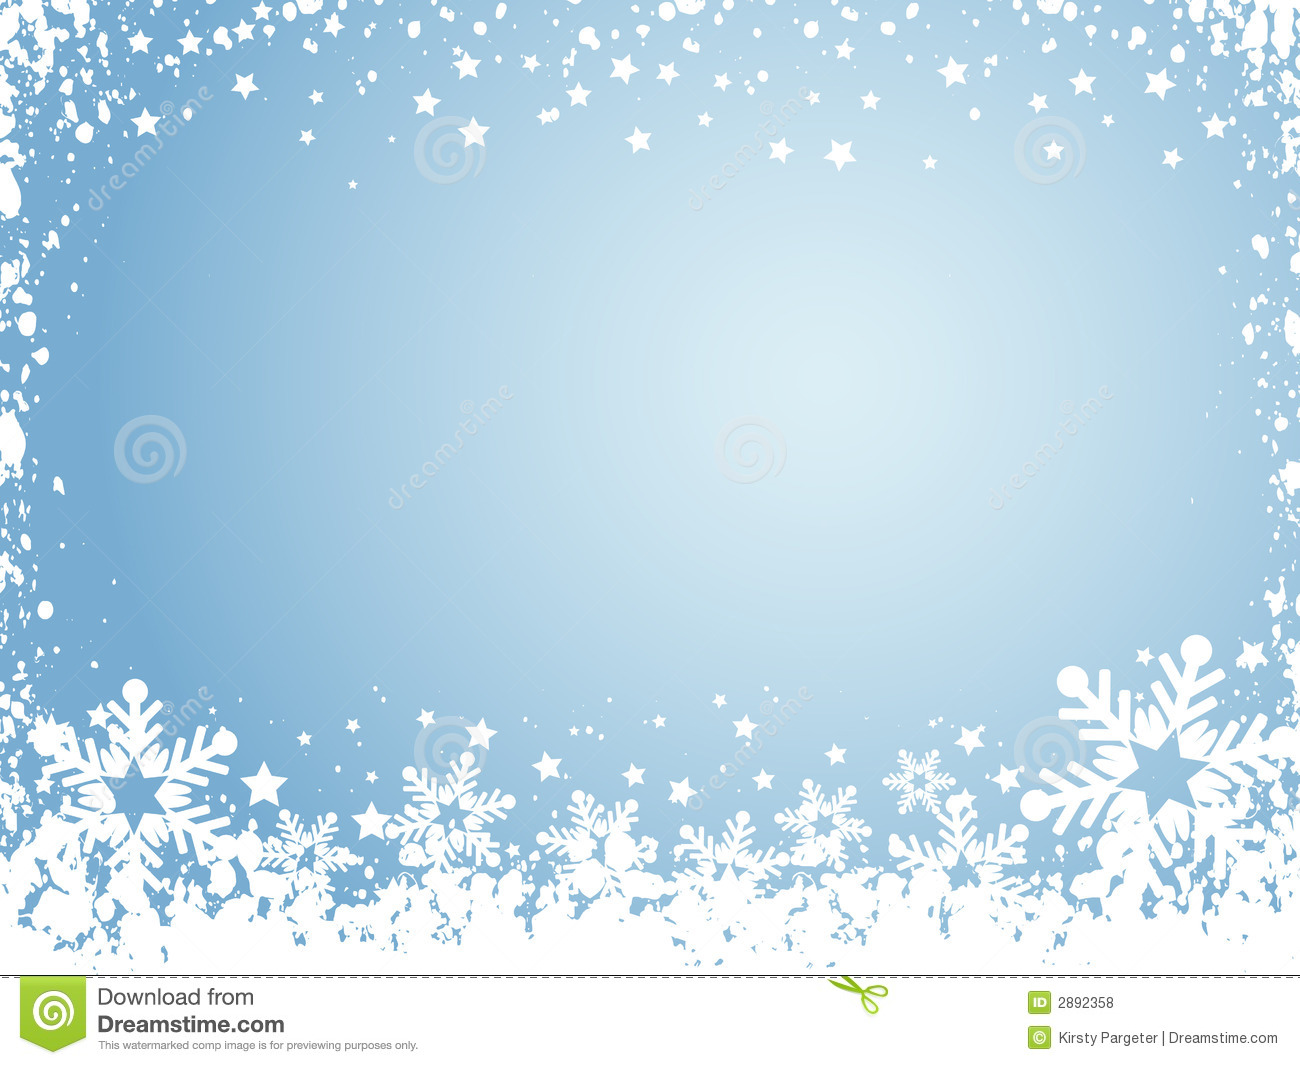 clipart snowflake background - photo #6